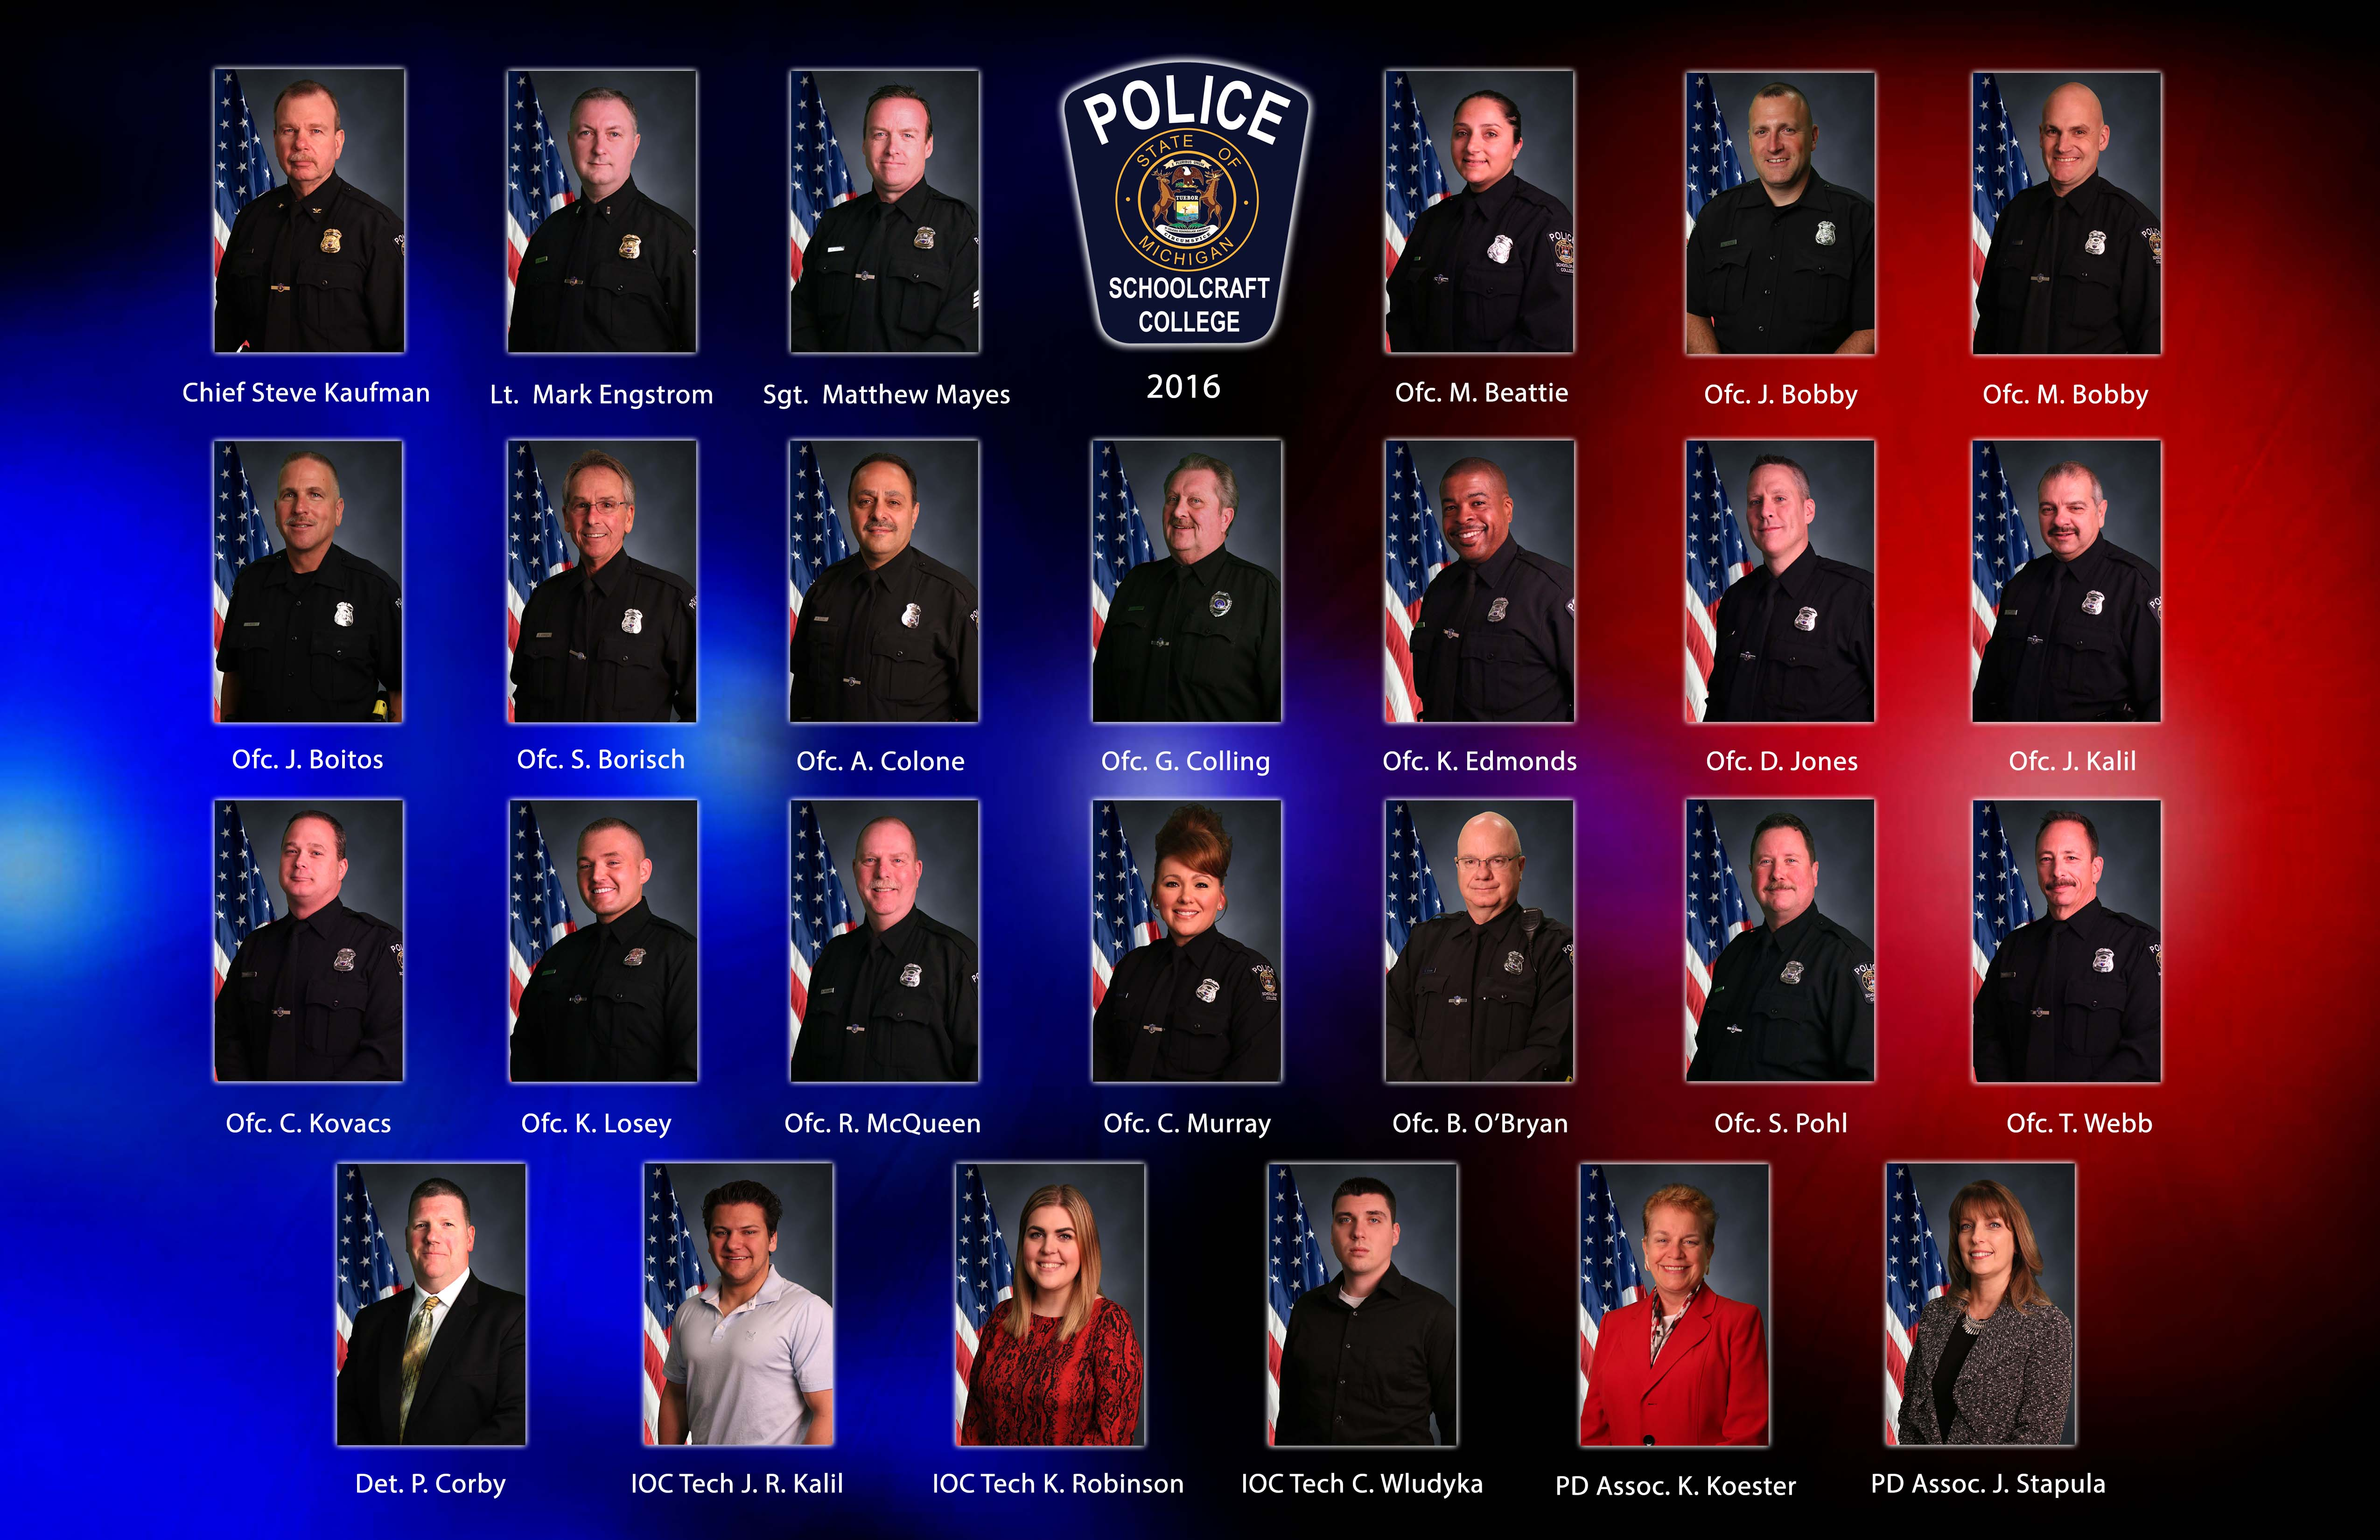 SC Police Department Staff